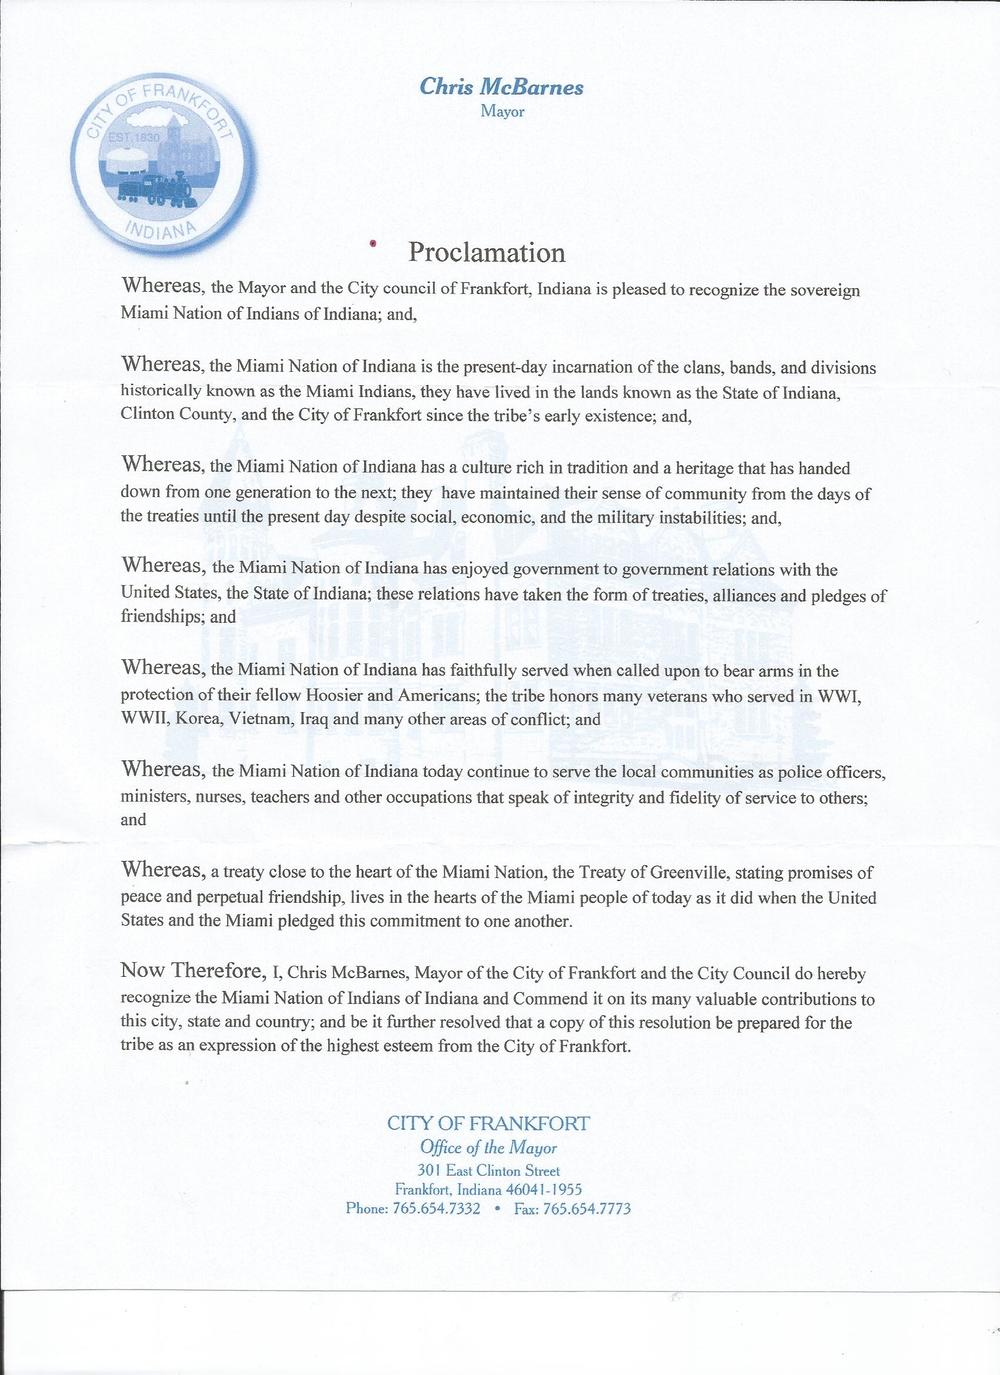 Proclamation City of Frankfort.jpg